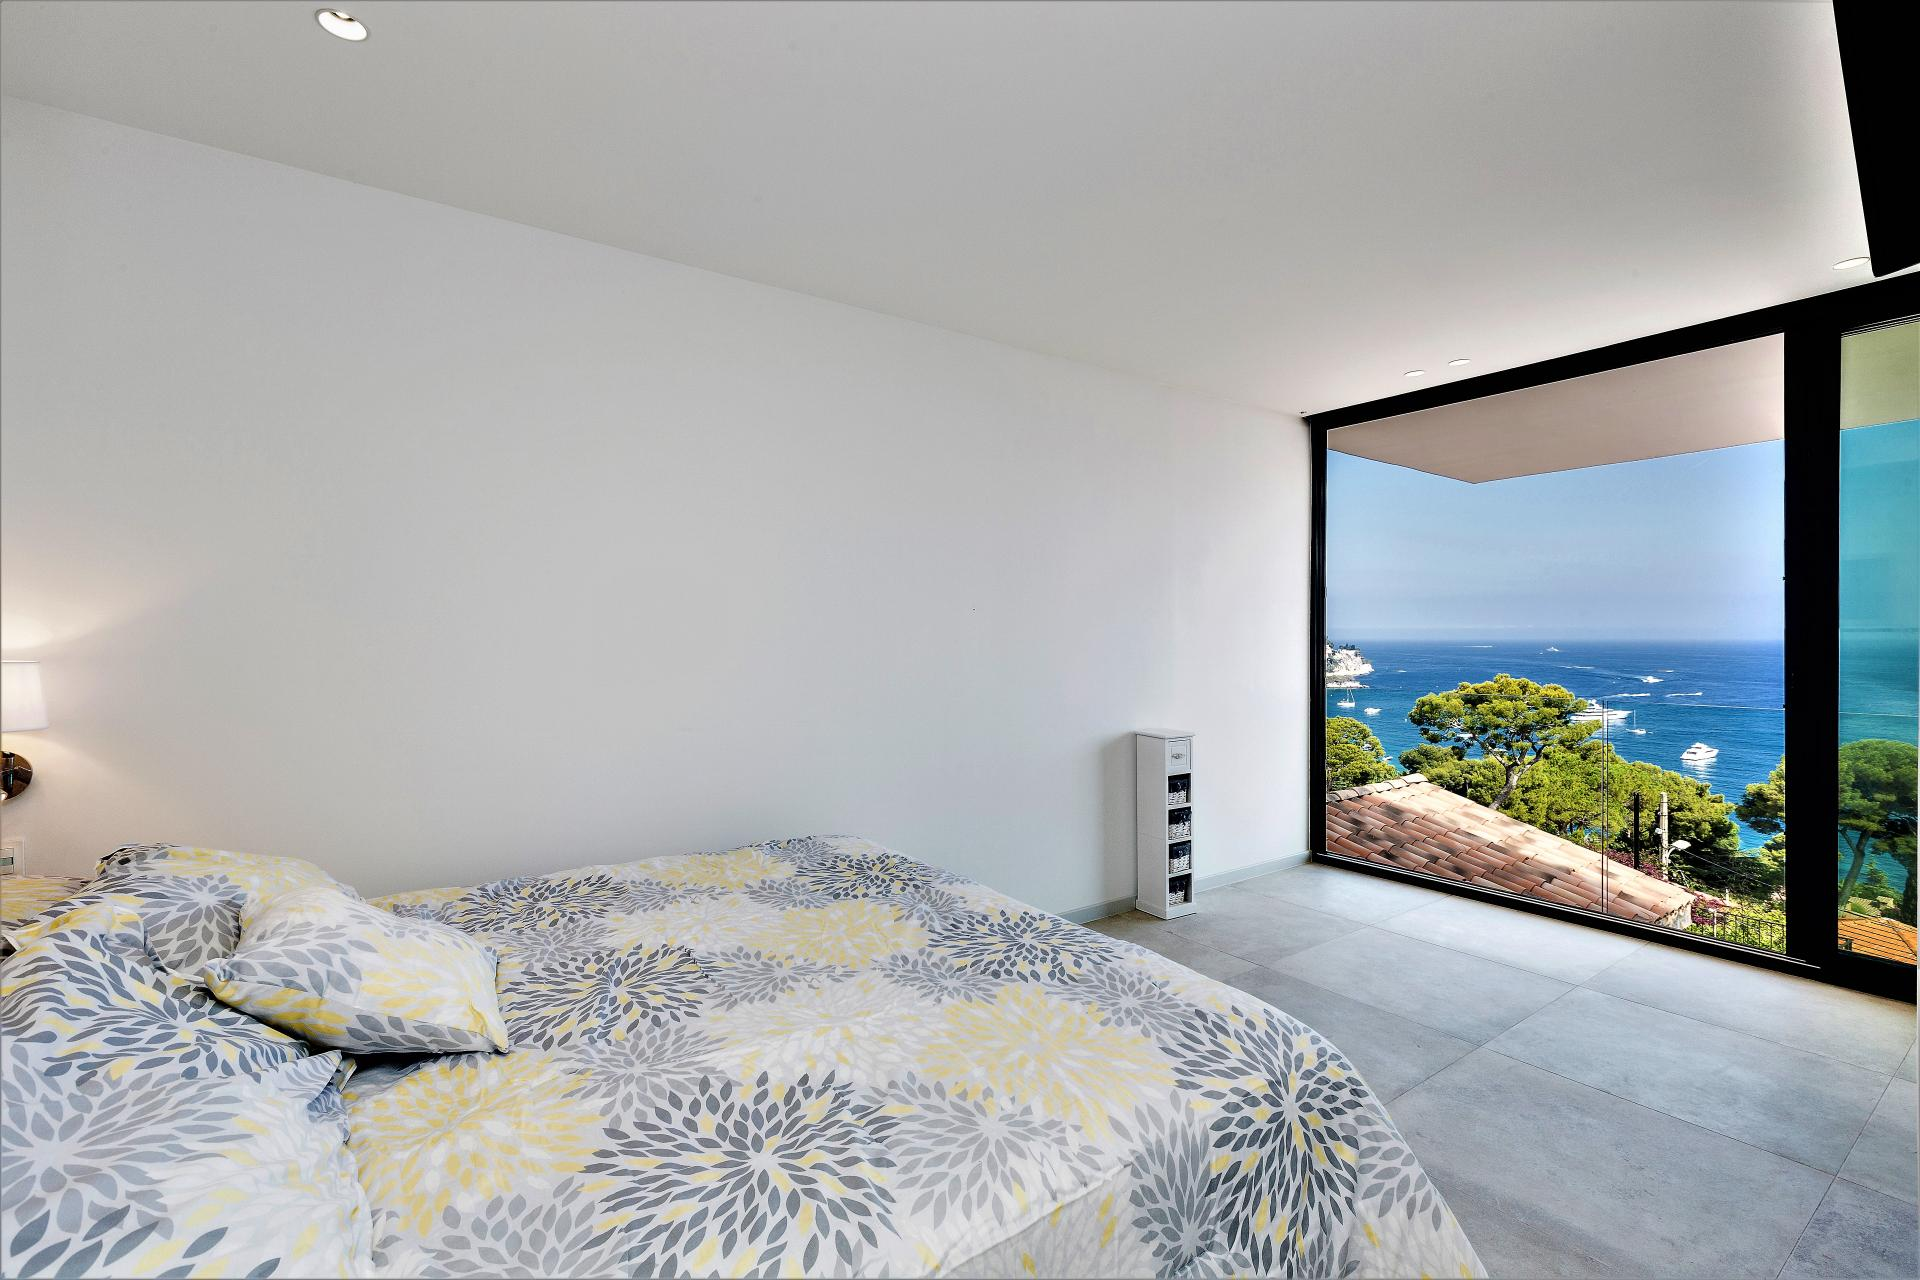 ANOTHER BEDROOM WITH SEA VIEWS IN INFINITY VILLA